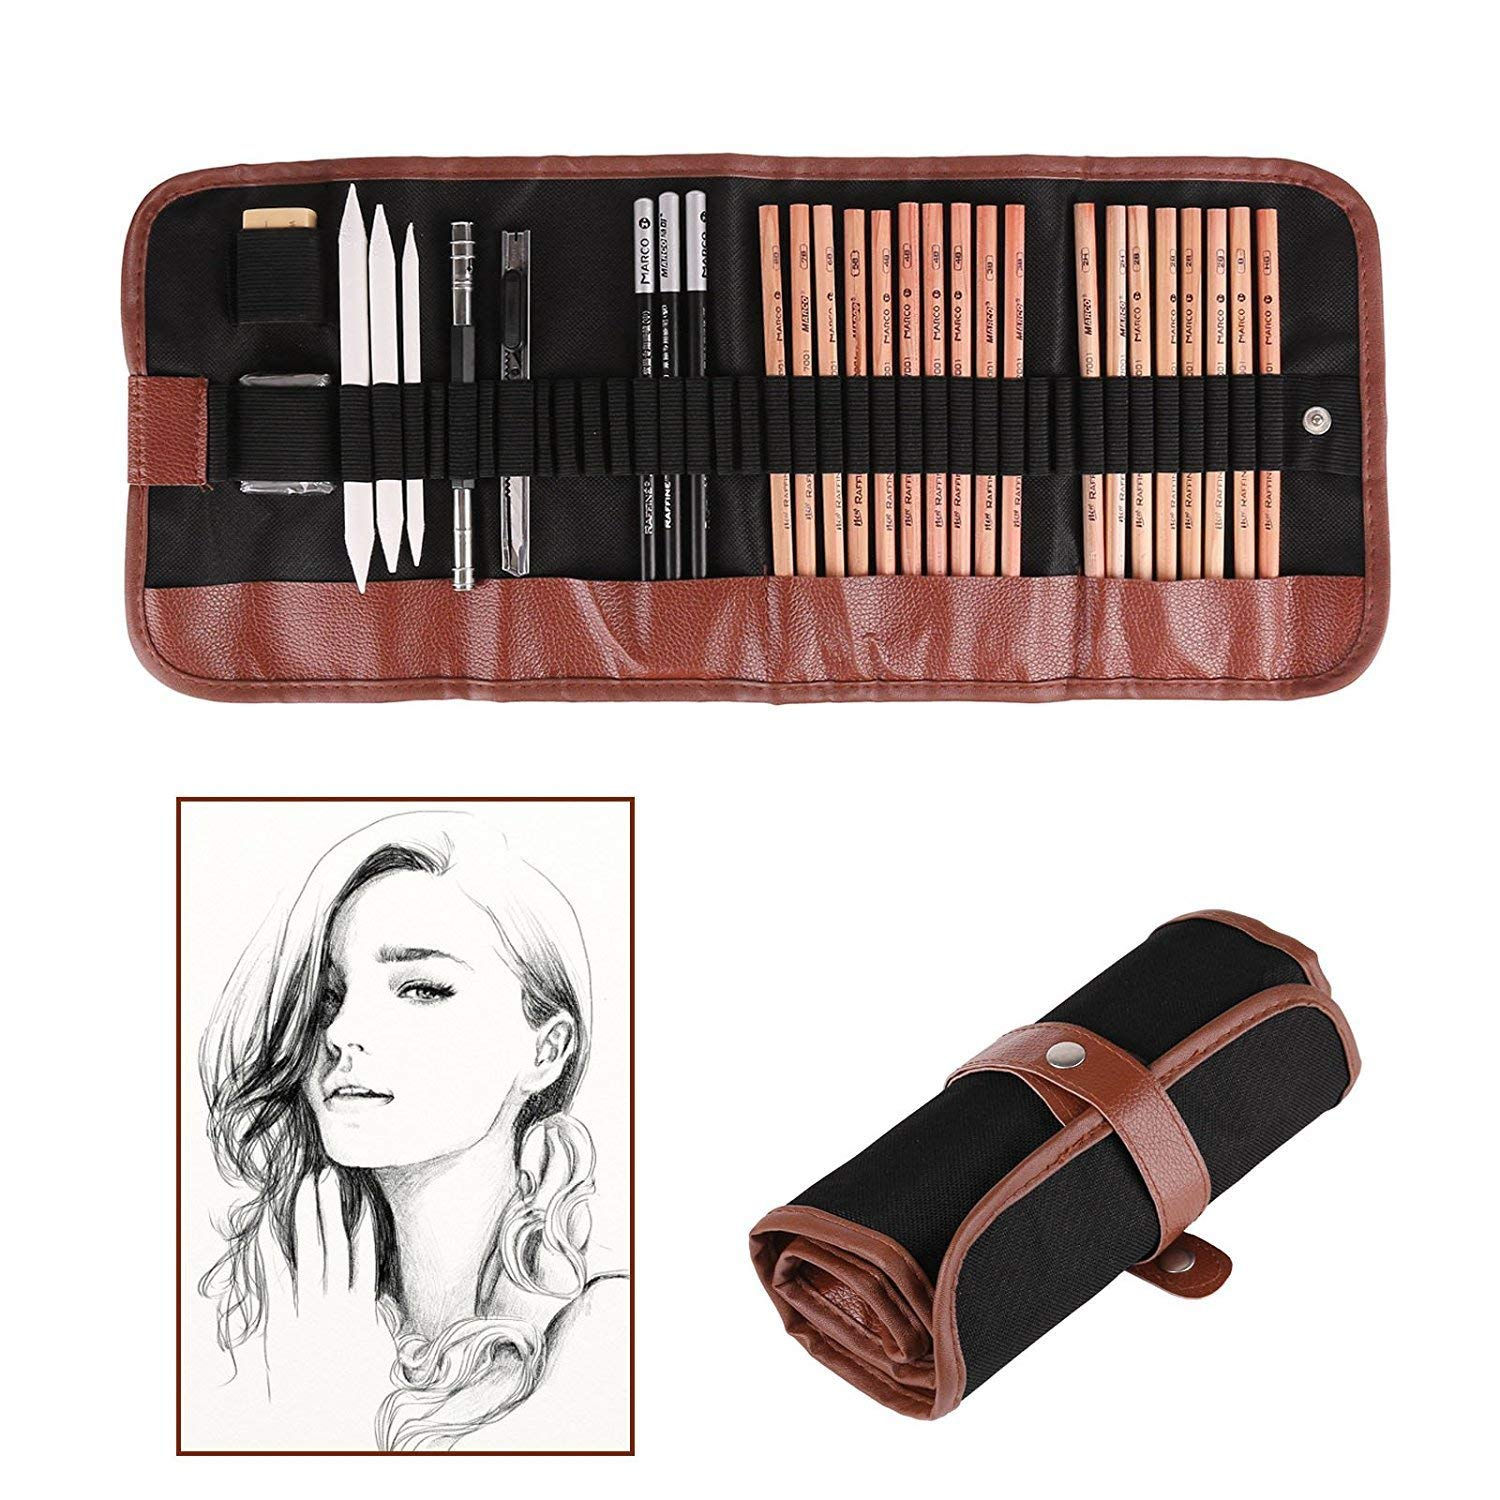 Sketching pencil set pen charcoal sketch set roll up canvas carry pouch drawing eraser craft knife pencil extender set